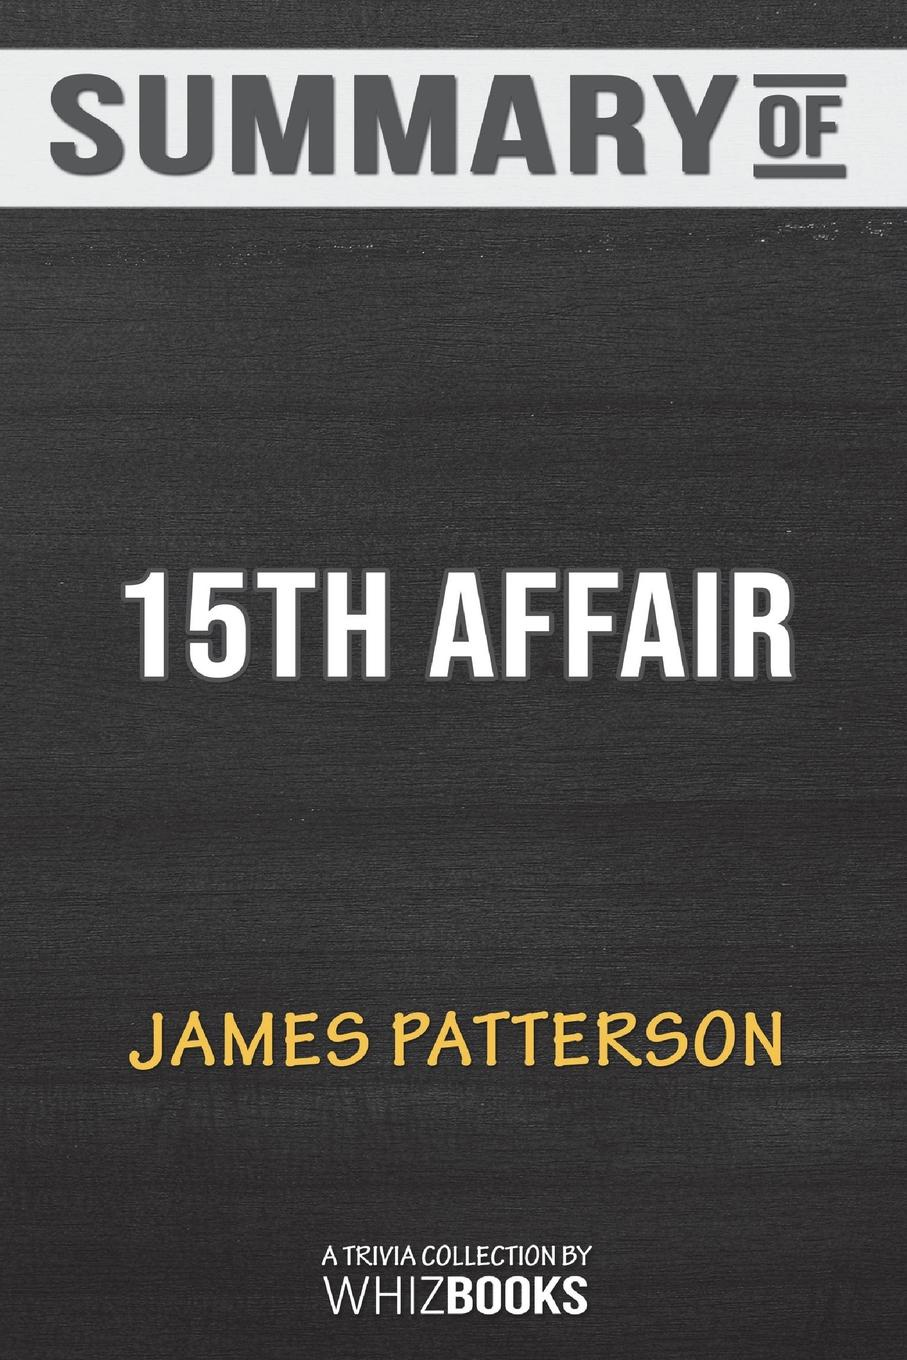 Фото - WhizBooks Summary of 15th Affair (Women's Murder Club) by James Patterson. Trivia/Quiz Book for Fans murder book